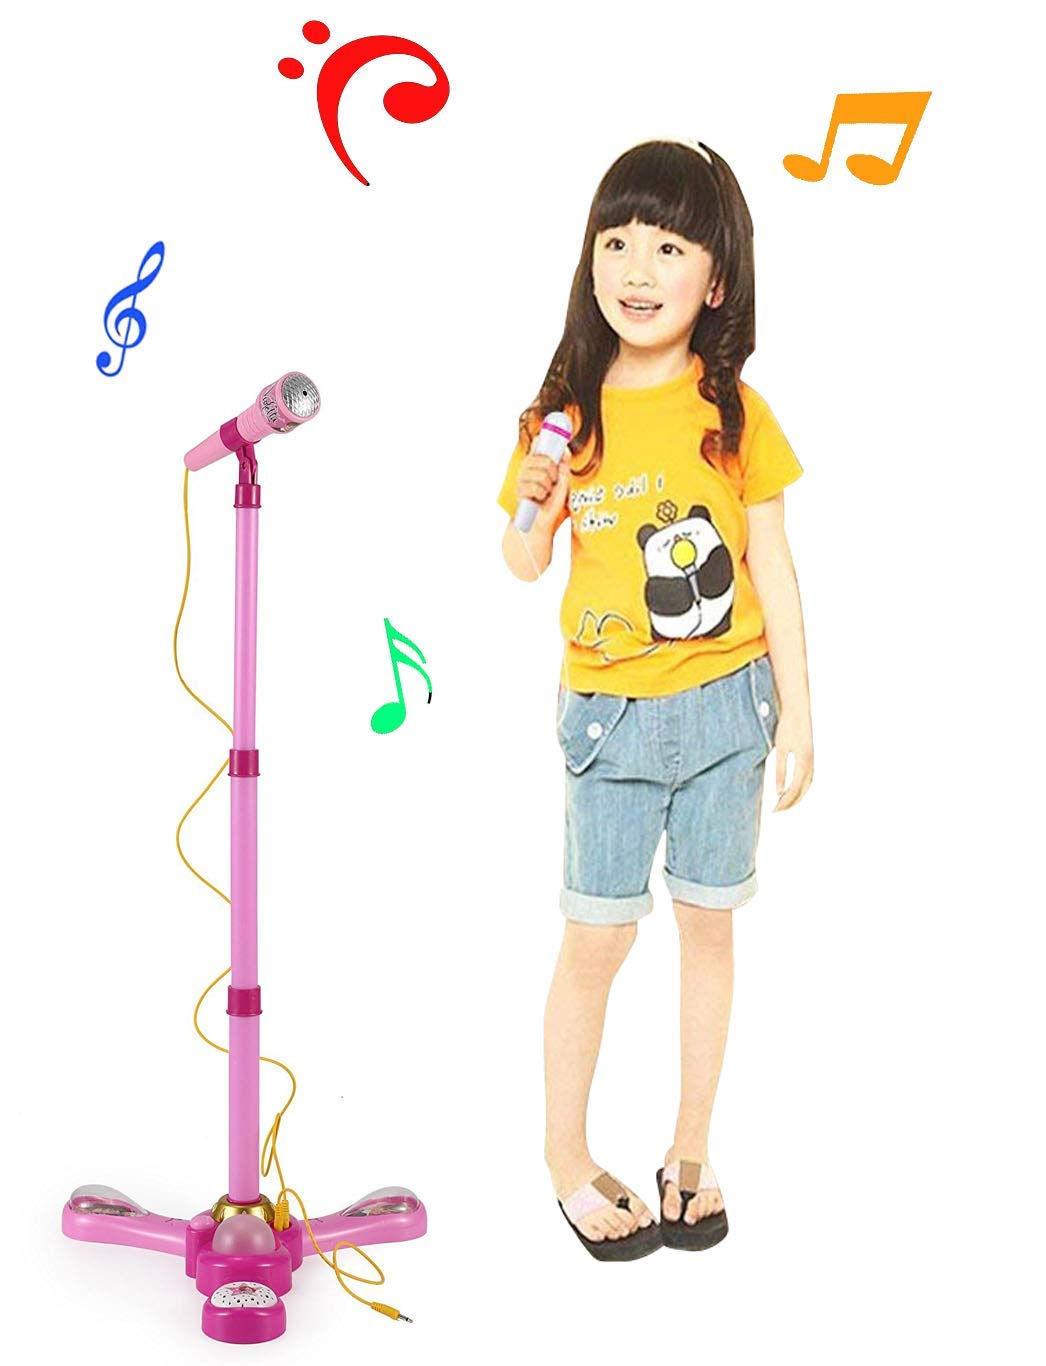 Kids Karaoke Pink Stand Up Microphone Toy Play Set w/ Built In MP3 Jack